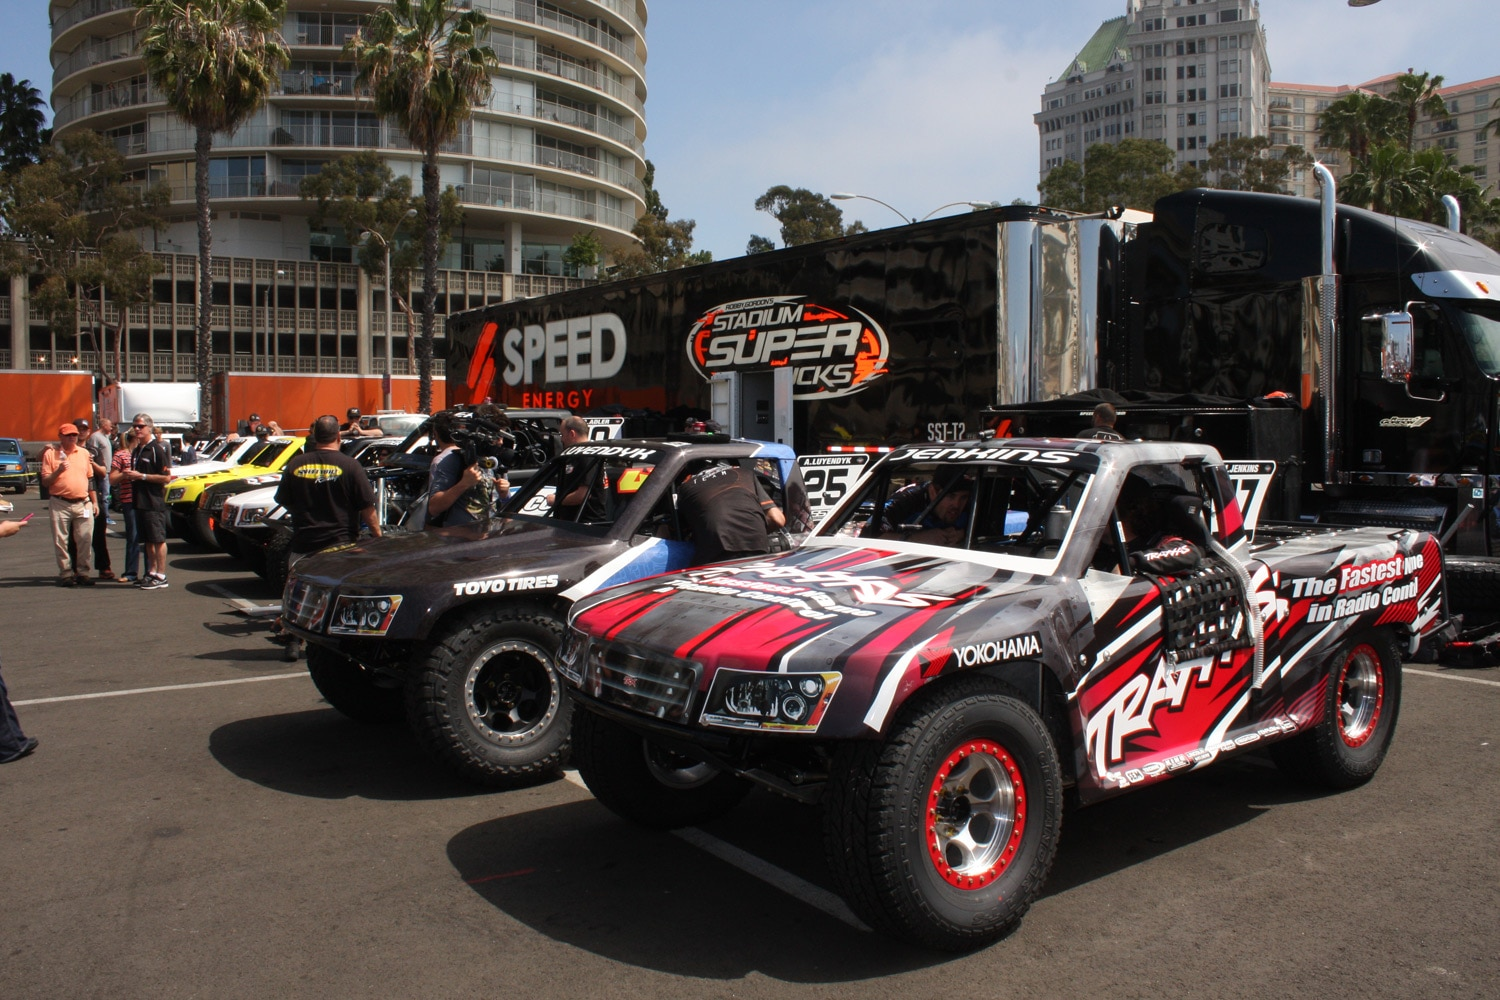 1304OR 20+Robby Gordon SST Stadium Super Trucks 2013 Long Beach Grand Prix